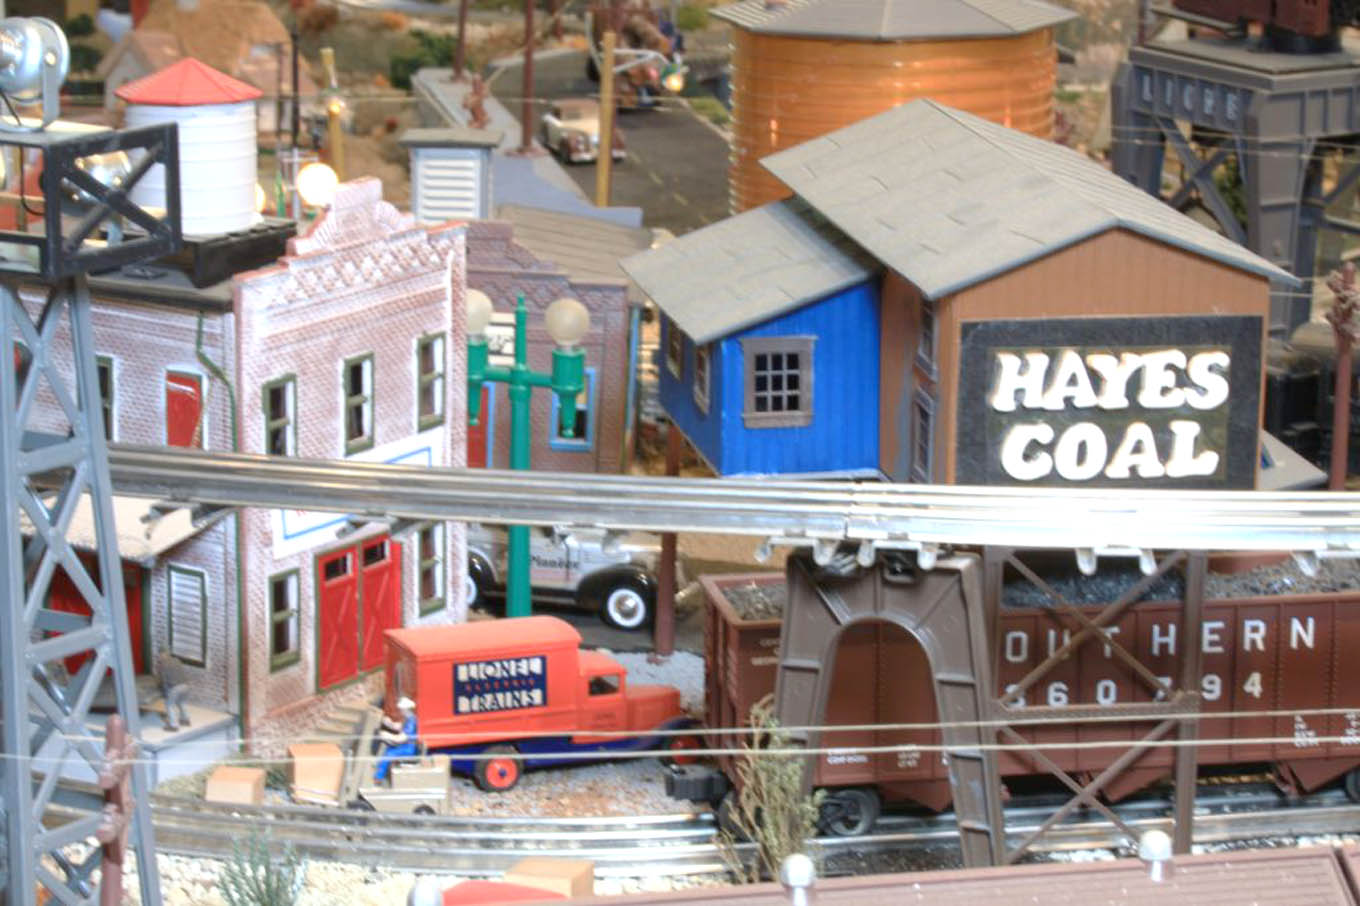 Click to enlarge,  Richard Hayes' train layout took two years to build on weekends as he traveled during the week. 'My train layout ... I fashioned after both the downtown Sanford train station and Hayes Coal Company and train yard environs, to an imagined rural country side and farm scenes traversed by the trains, turning into a mountain section with tunnels and bridges for the trains to negotiate,' said Hayes.